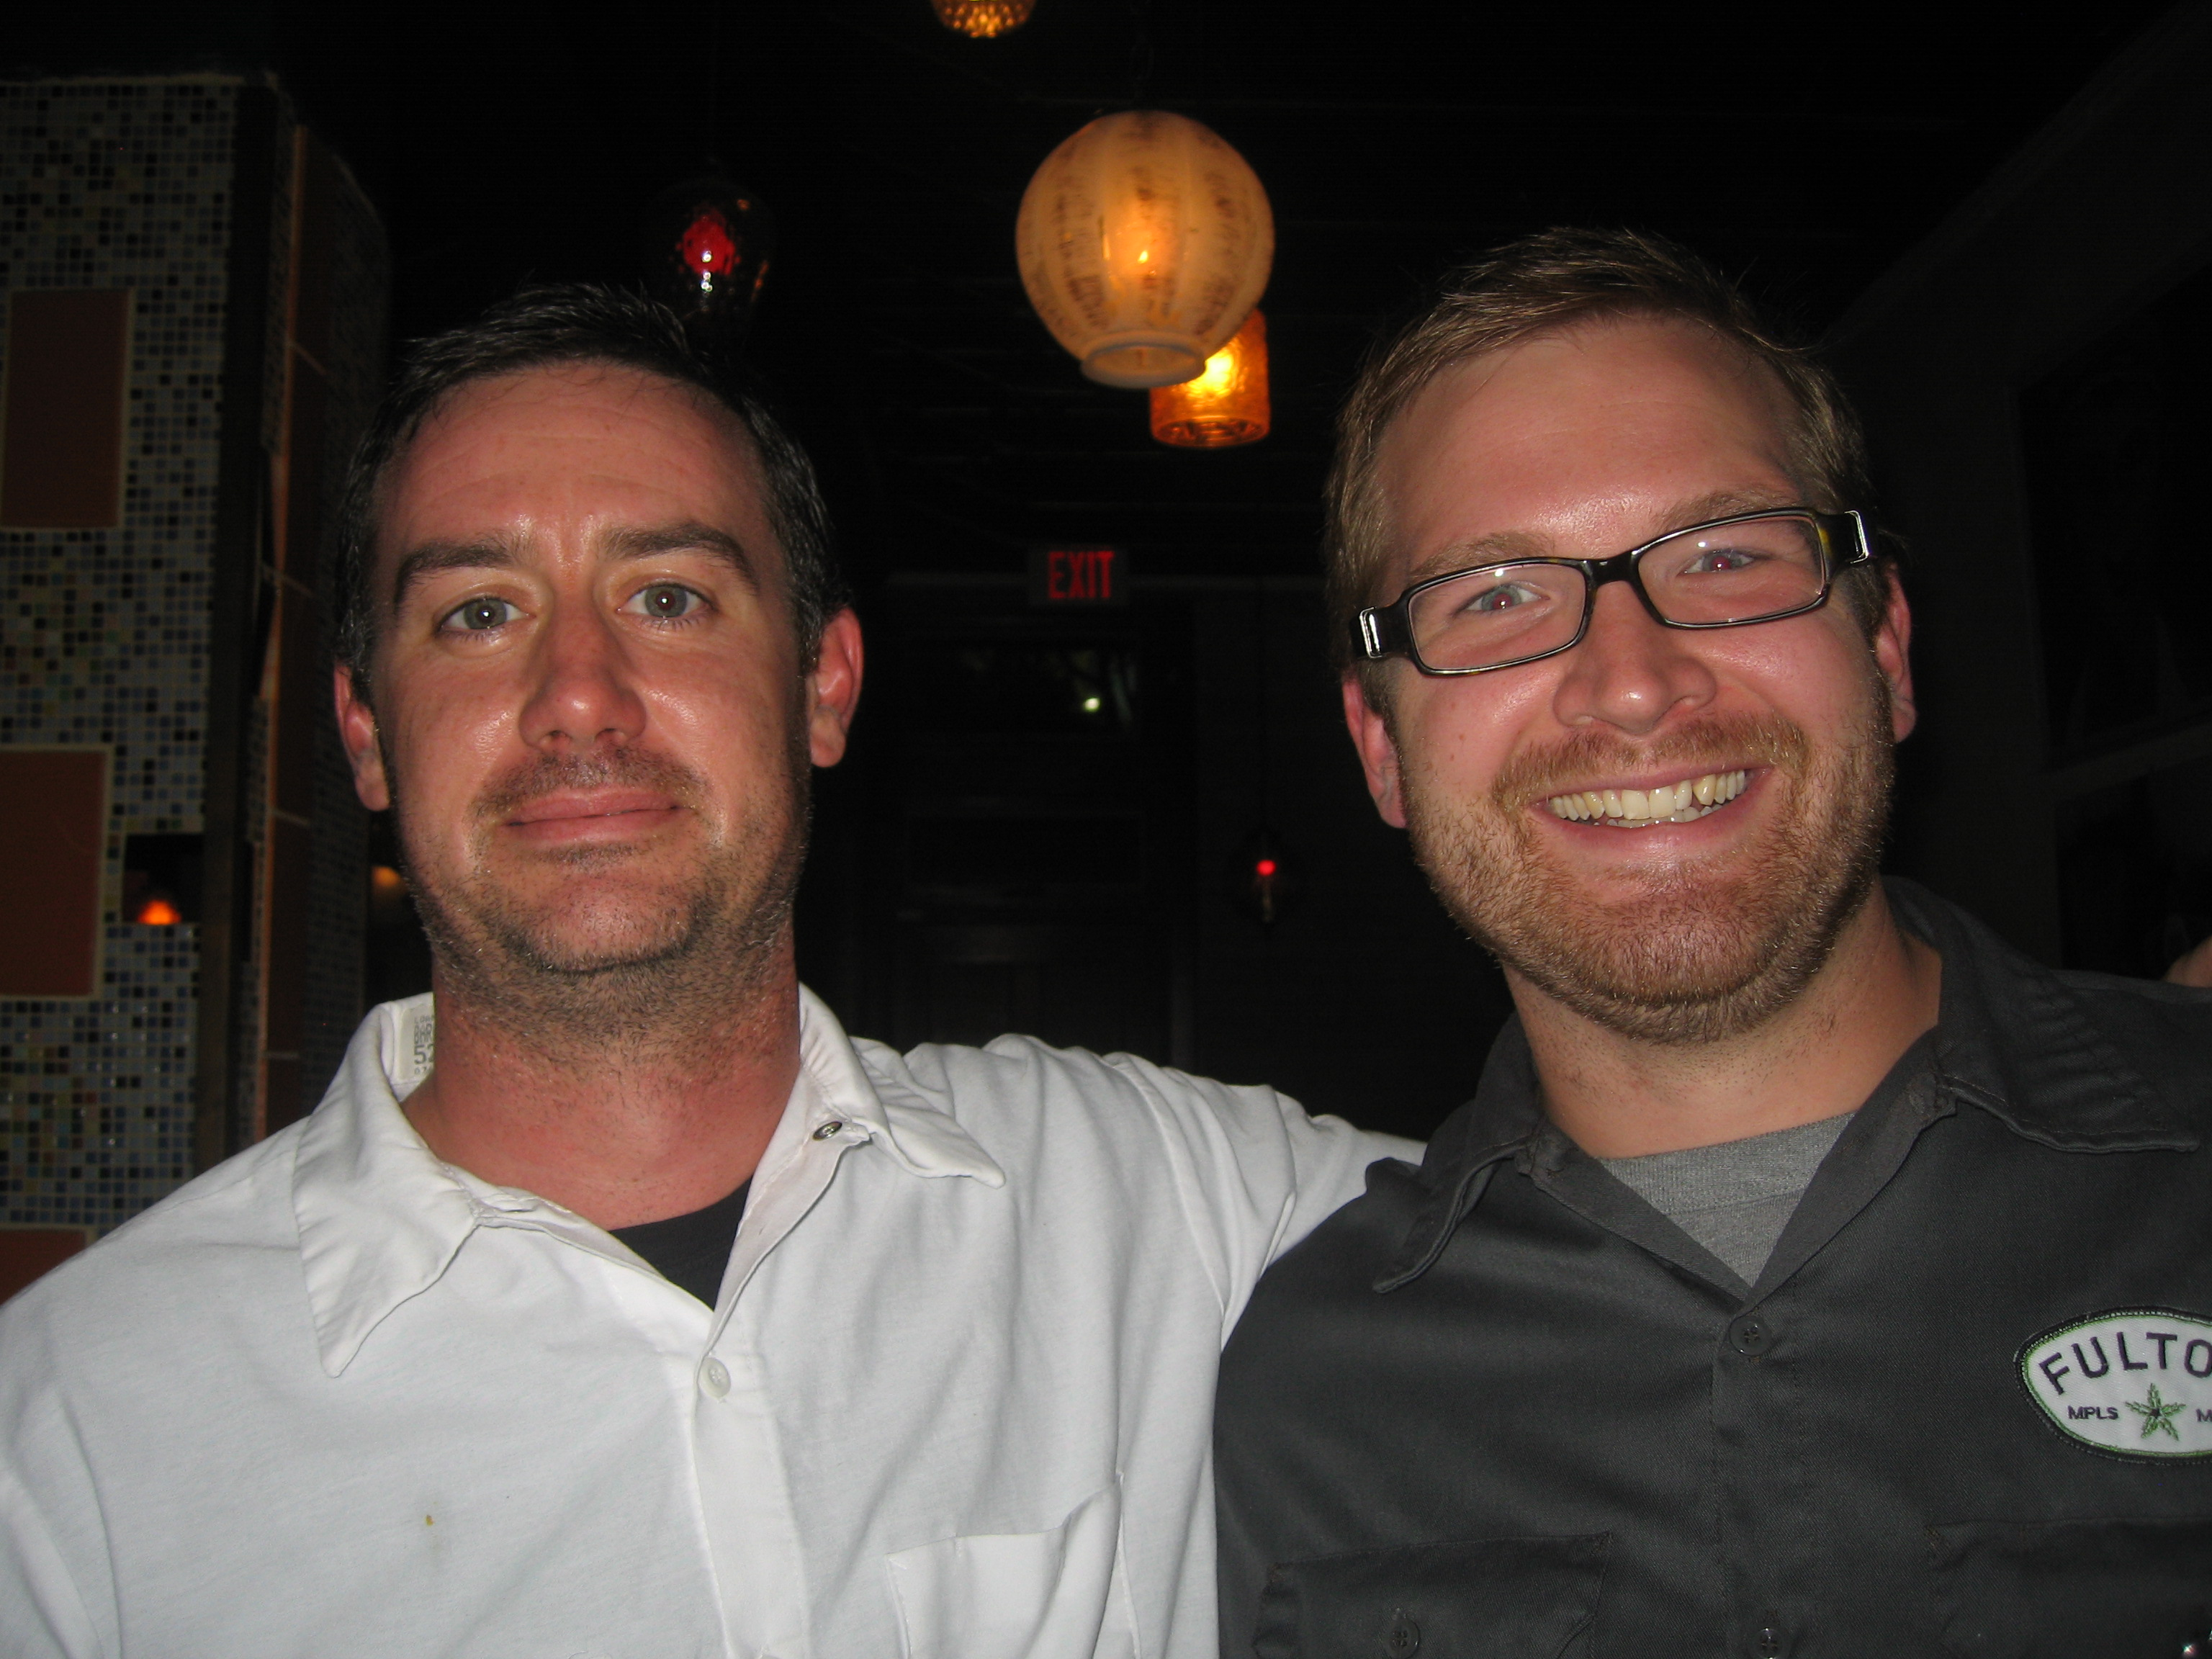 Chef Kevin Kathman (left) and Brewer Jim Diley